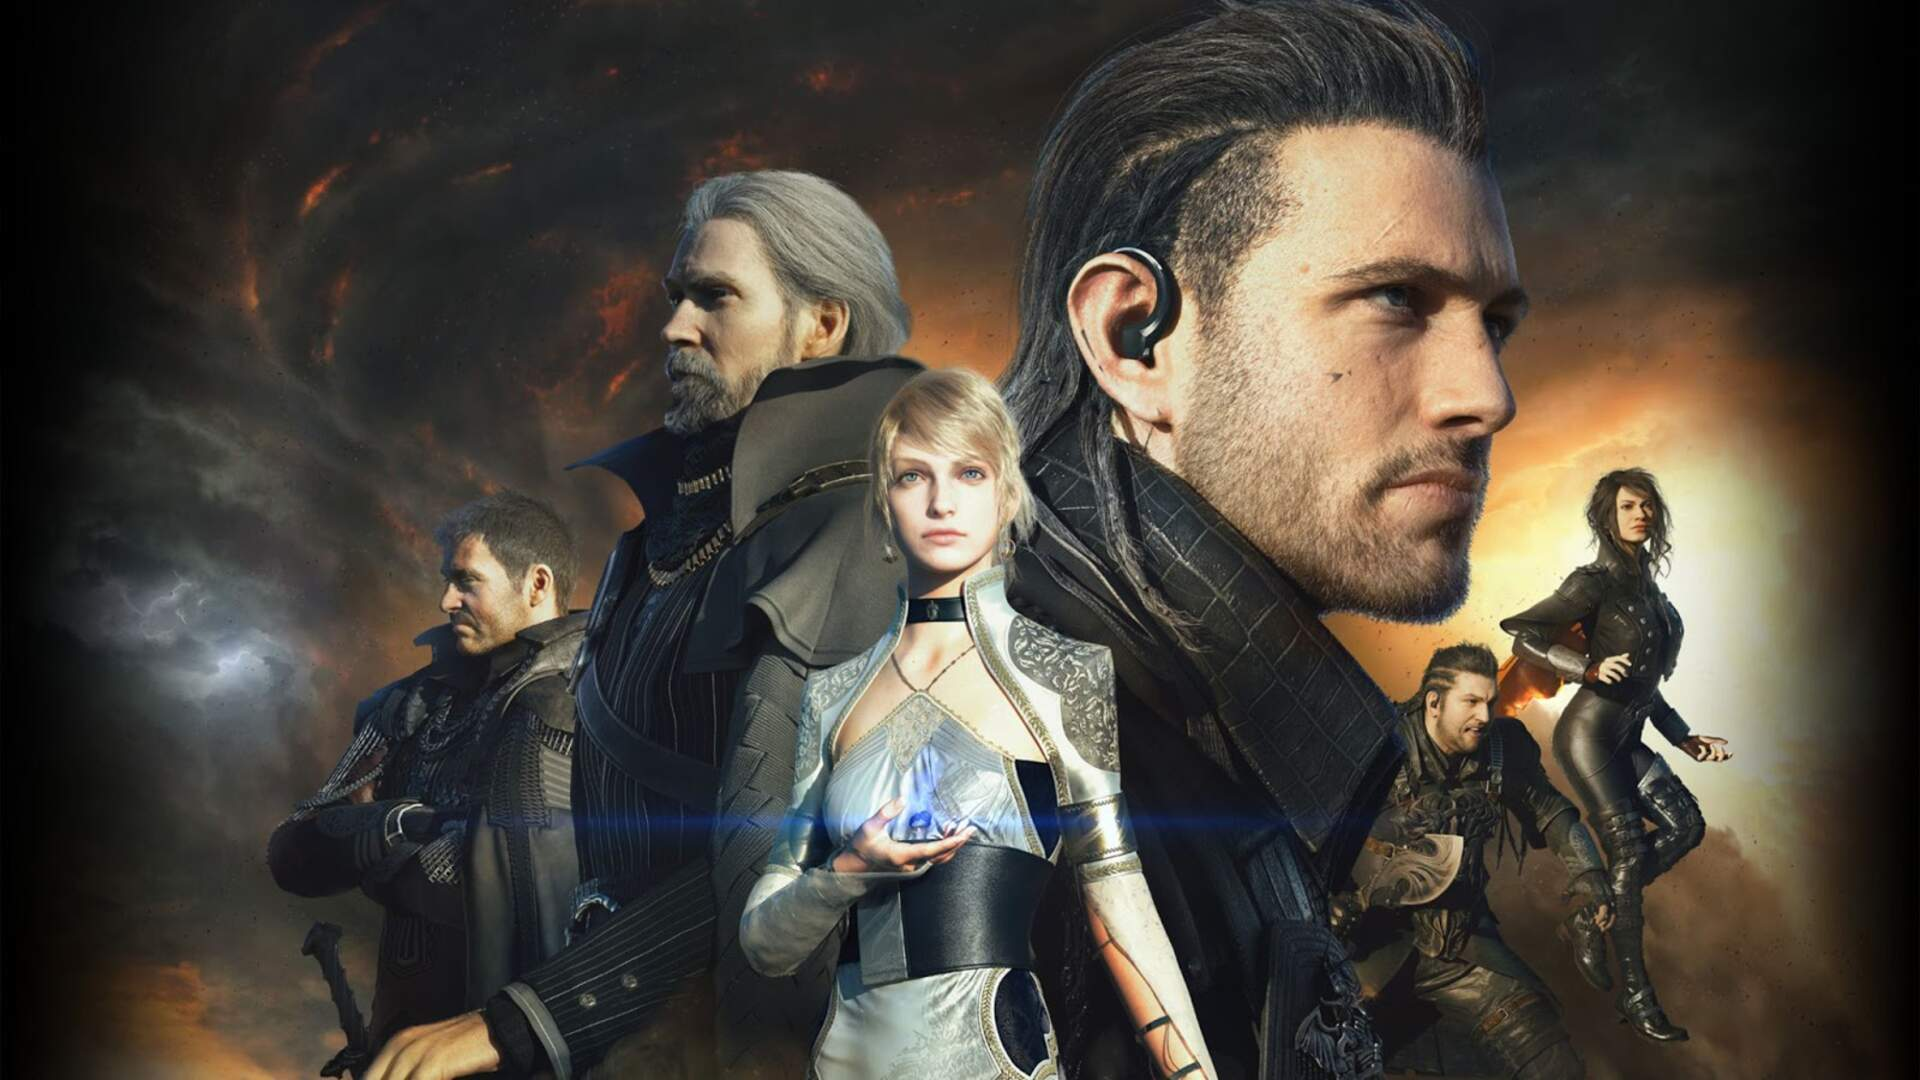 Final Fantasy 15 Developers Are Working On a New, Triple-A IP